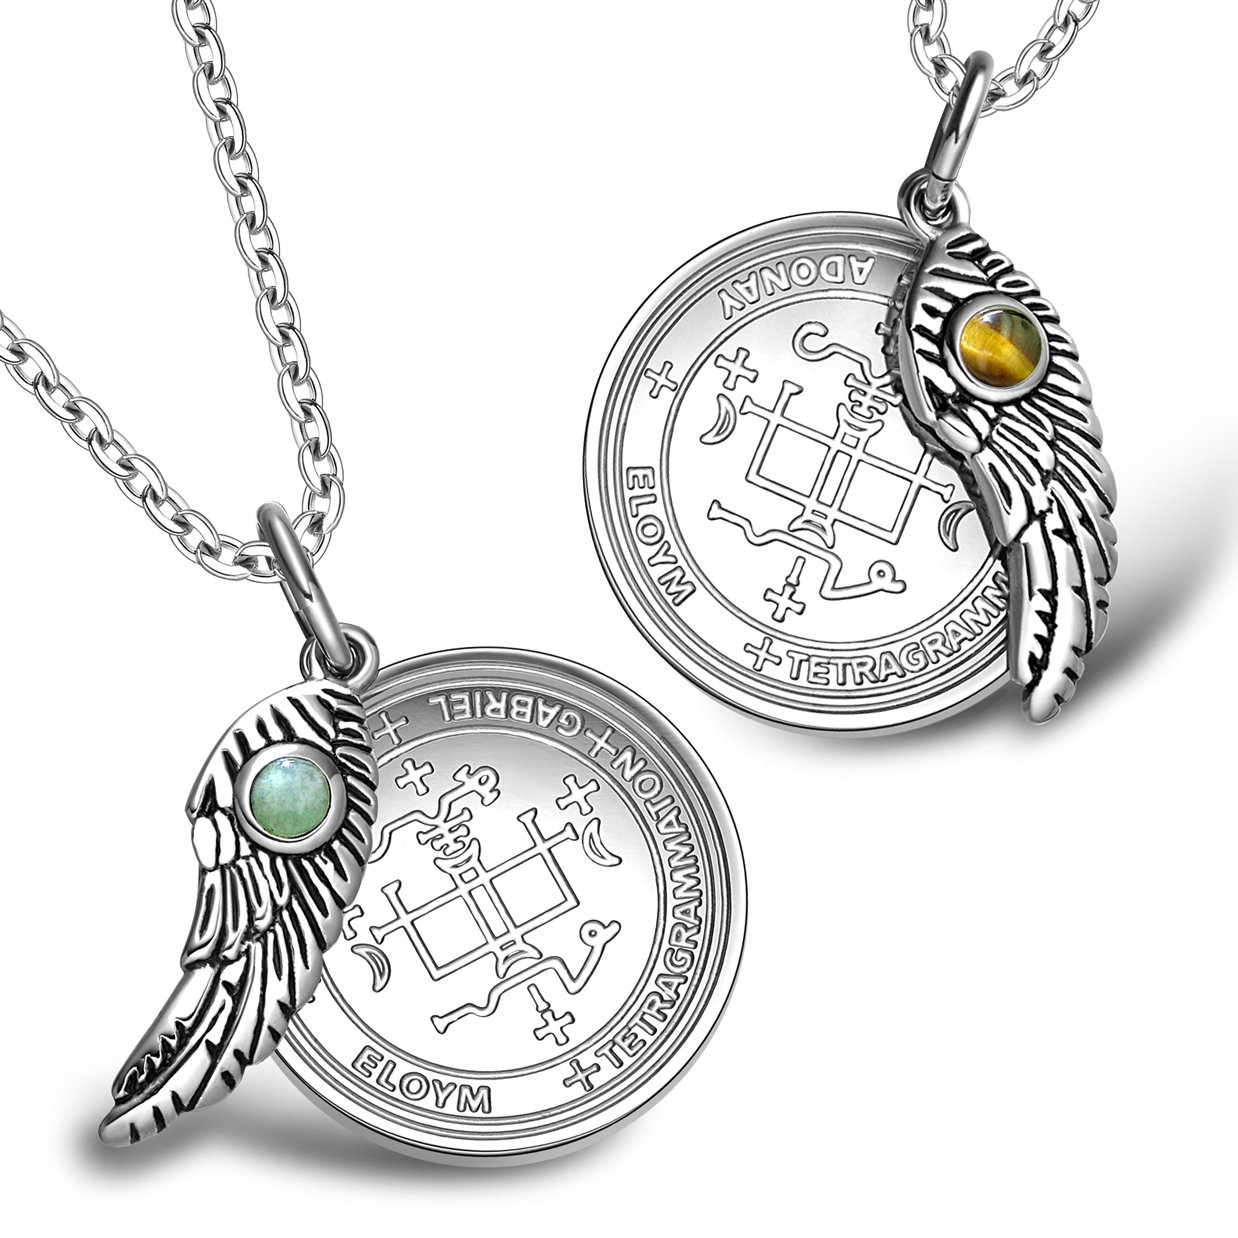 Guardian Angels and Archangels Magic Powers Love Couples and Best Friends Amulets and Gifts